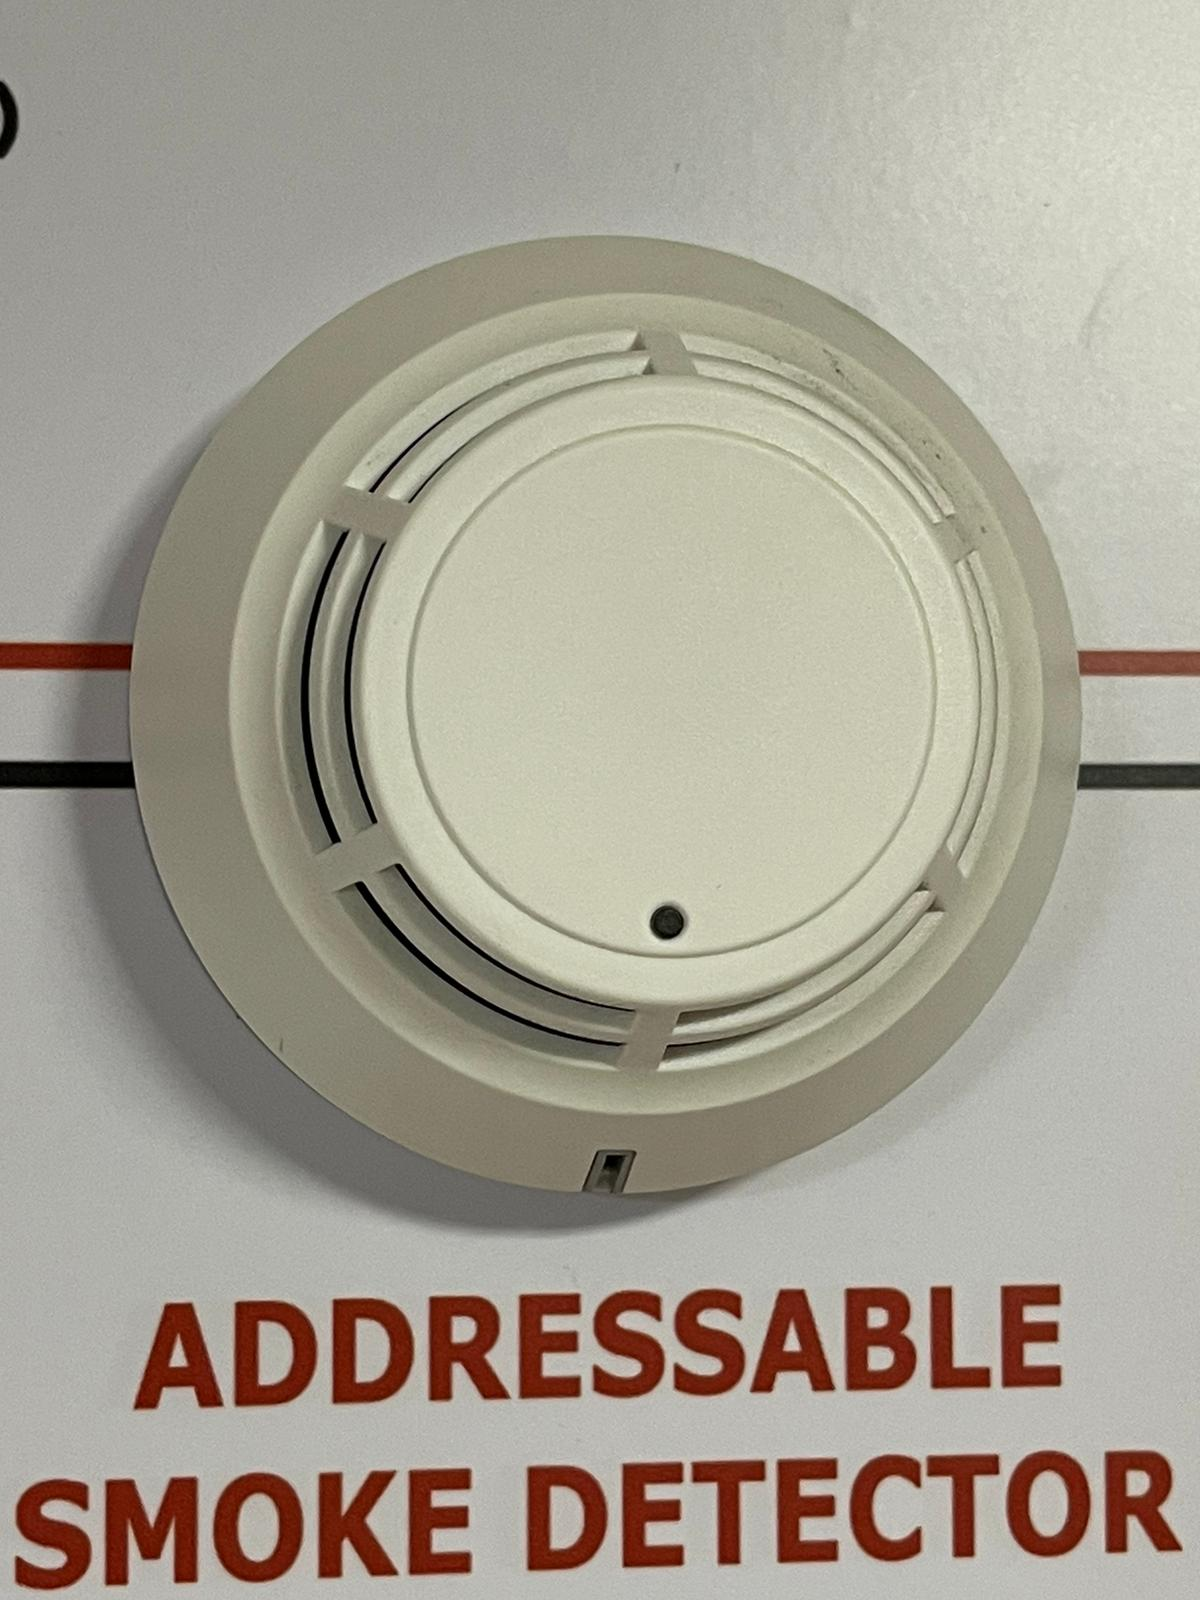 POINT-TYPE PHOTOELECTRIC SMOKE DETECTOR